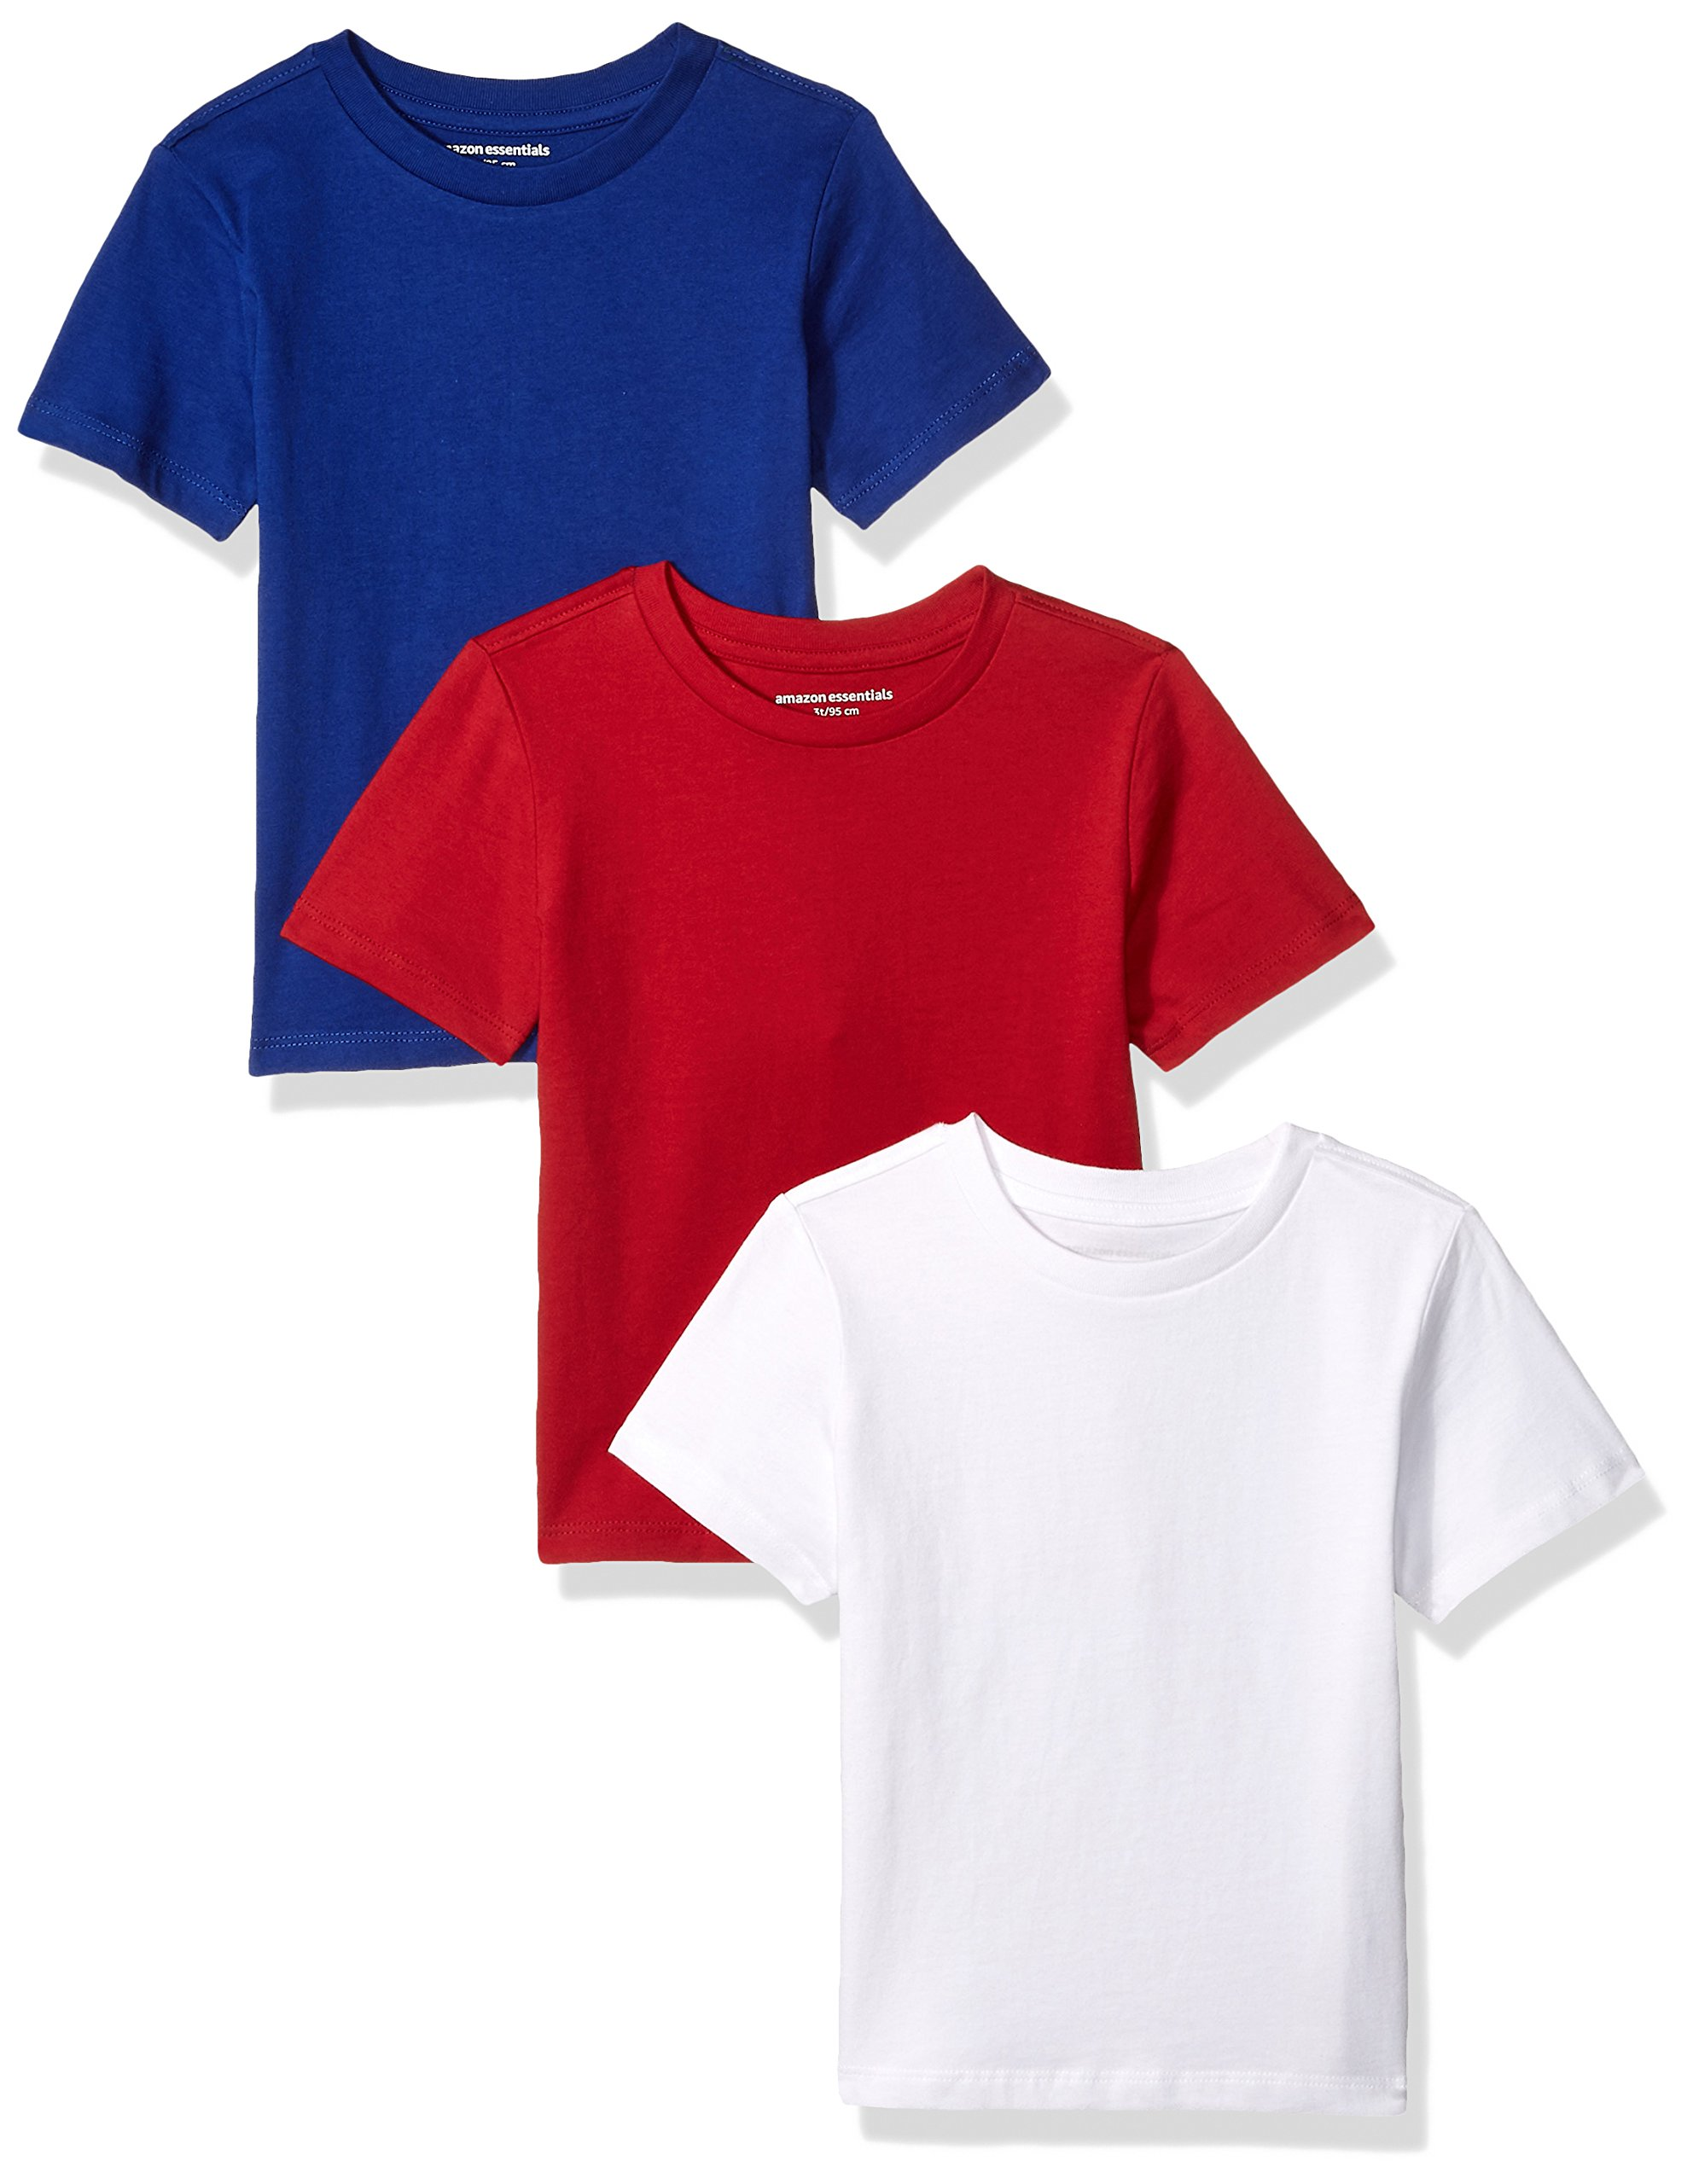 Amazon Essentials Big Boys' 3-Pack Short Sleeve Tee, Red/White/Blue, M (8)